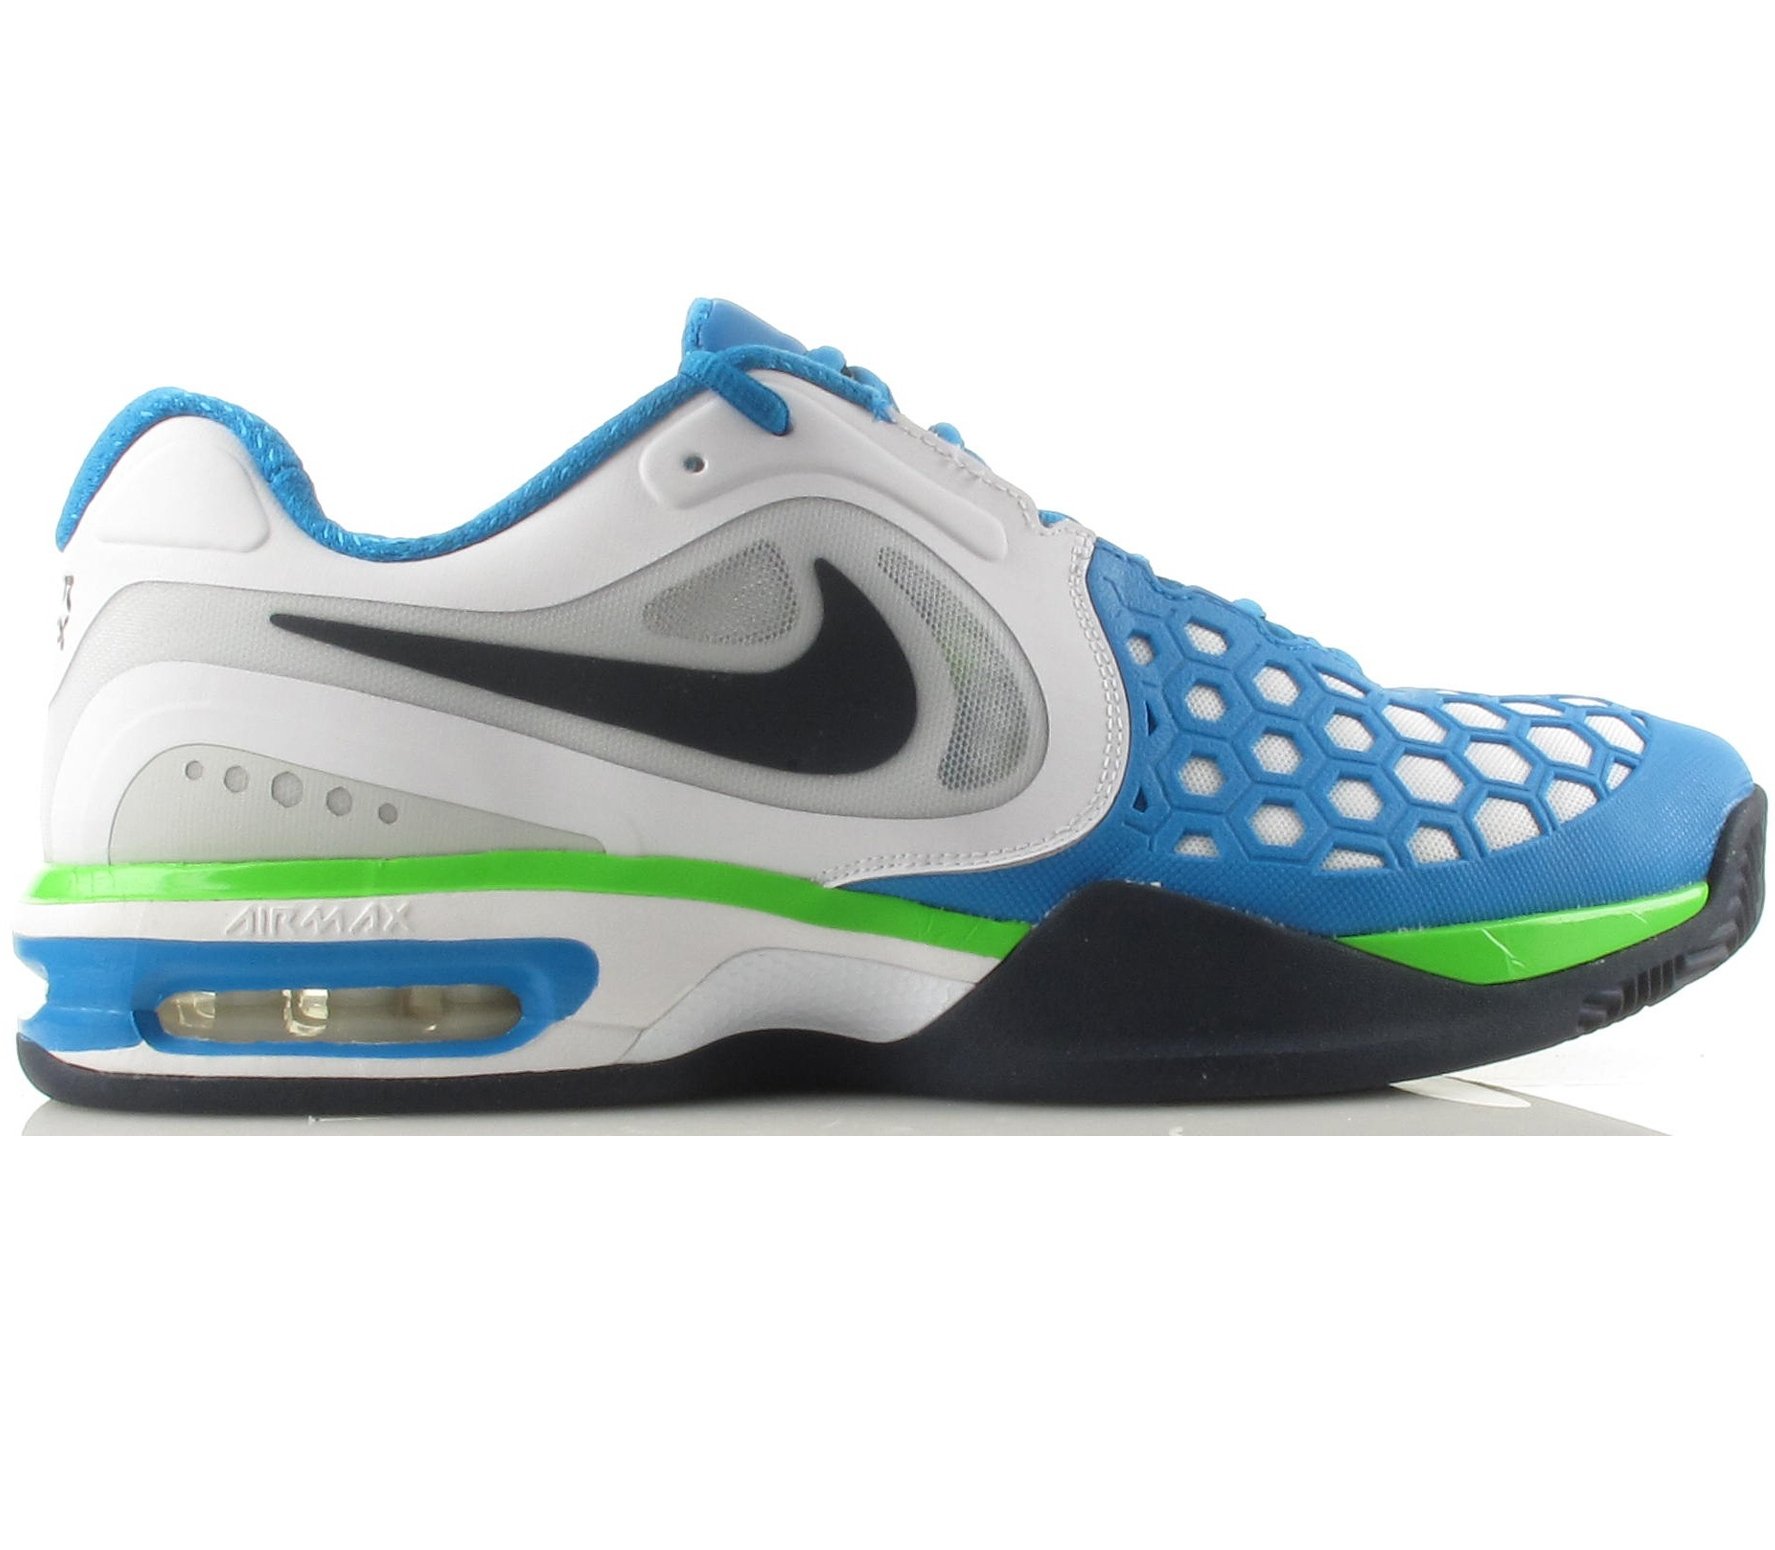 The Nike Air Max Courtballistec 4.3 Clay: Durability for claycourts